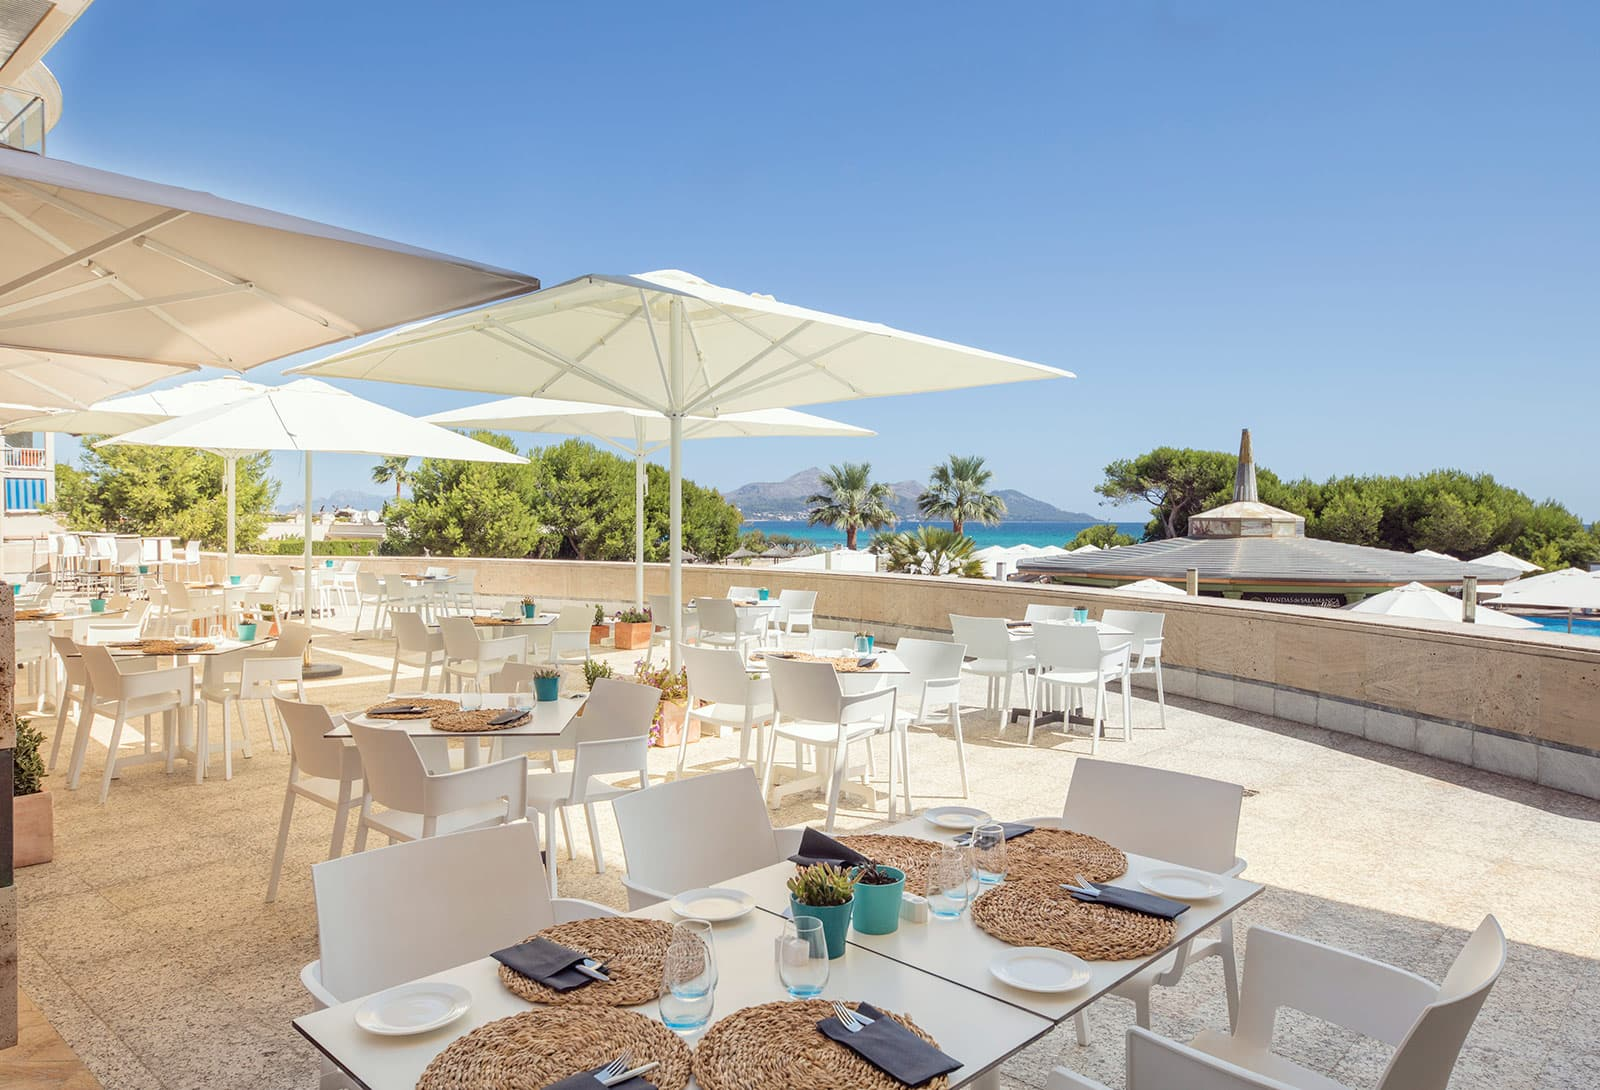 Terraza Restaurante Mare, Be Live Collection Palace de Muro